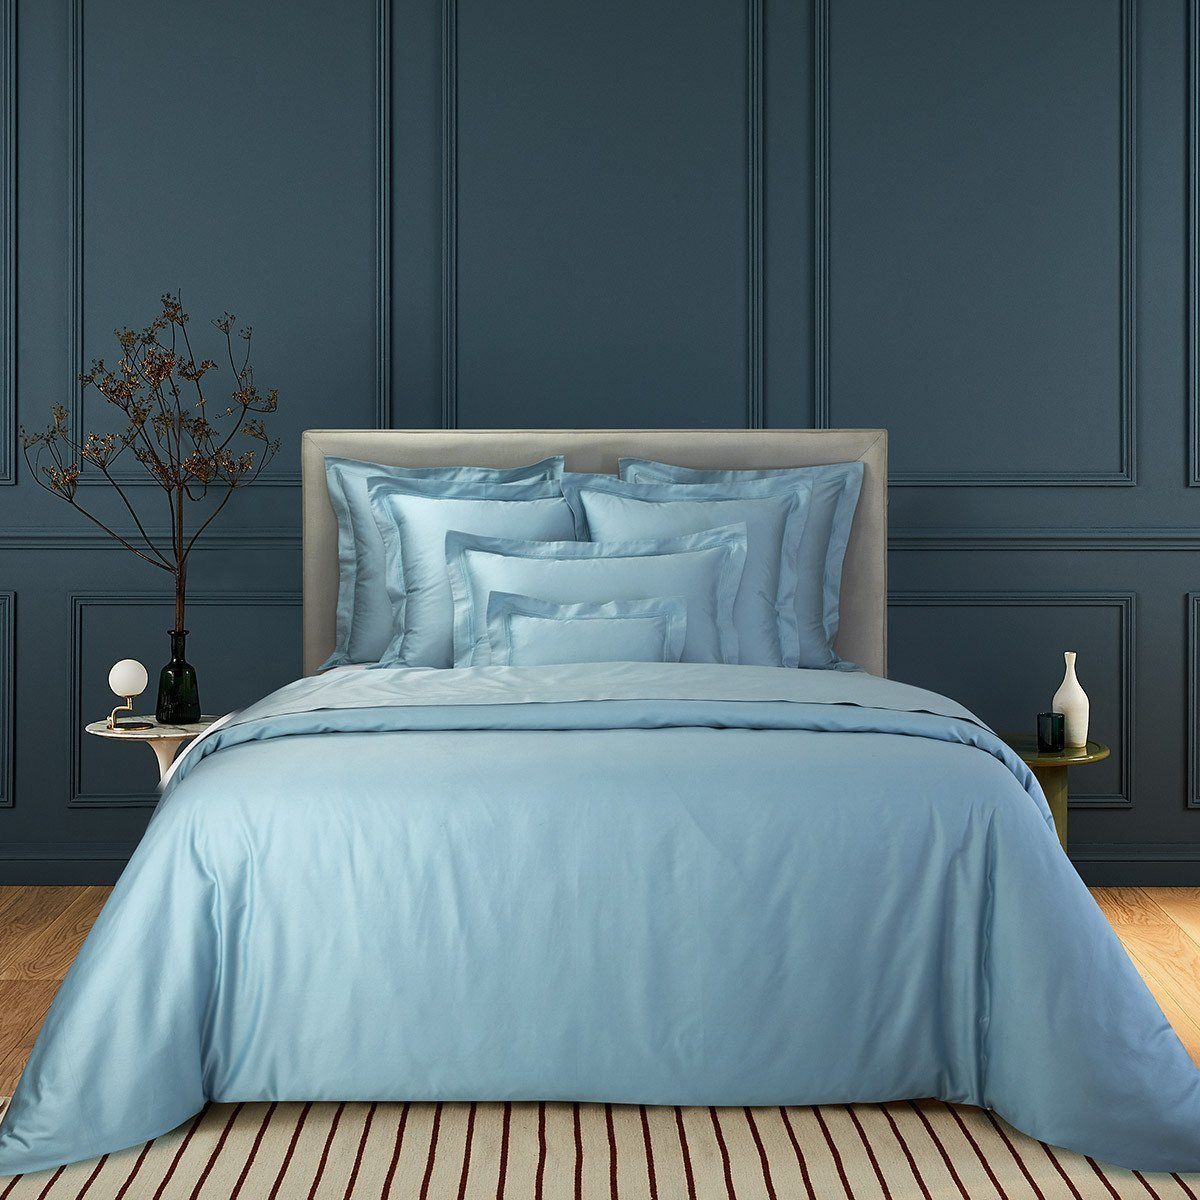 Yves Delorme Triomphe Horizon Bed Linen Lifestyle